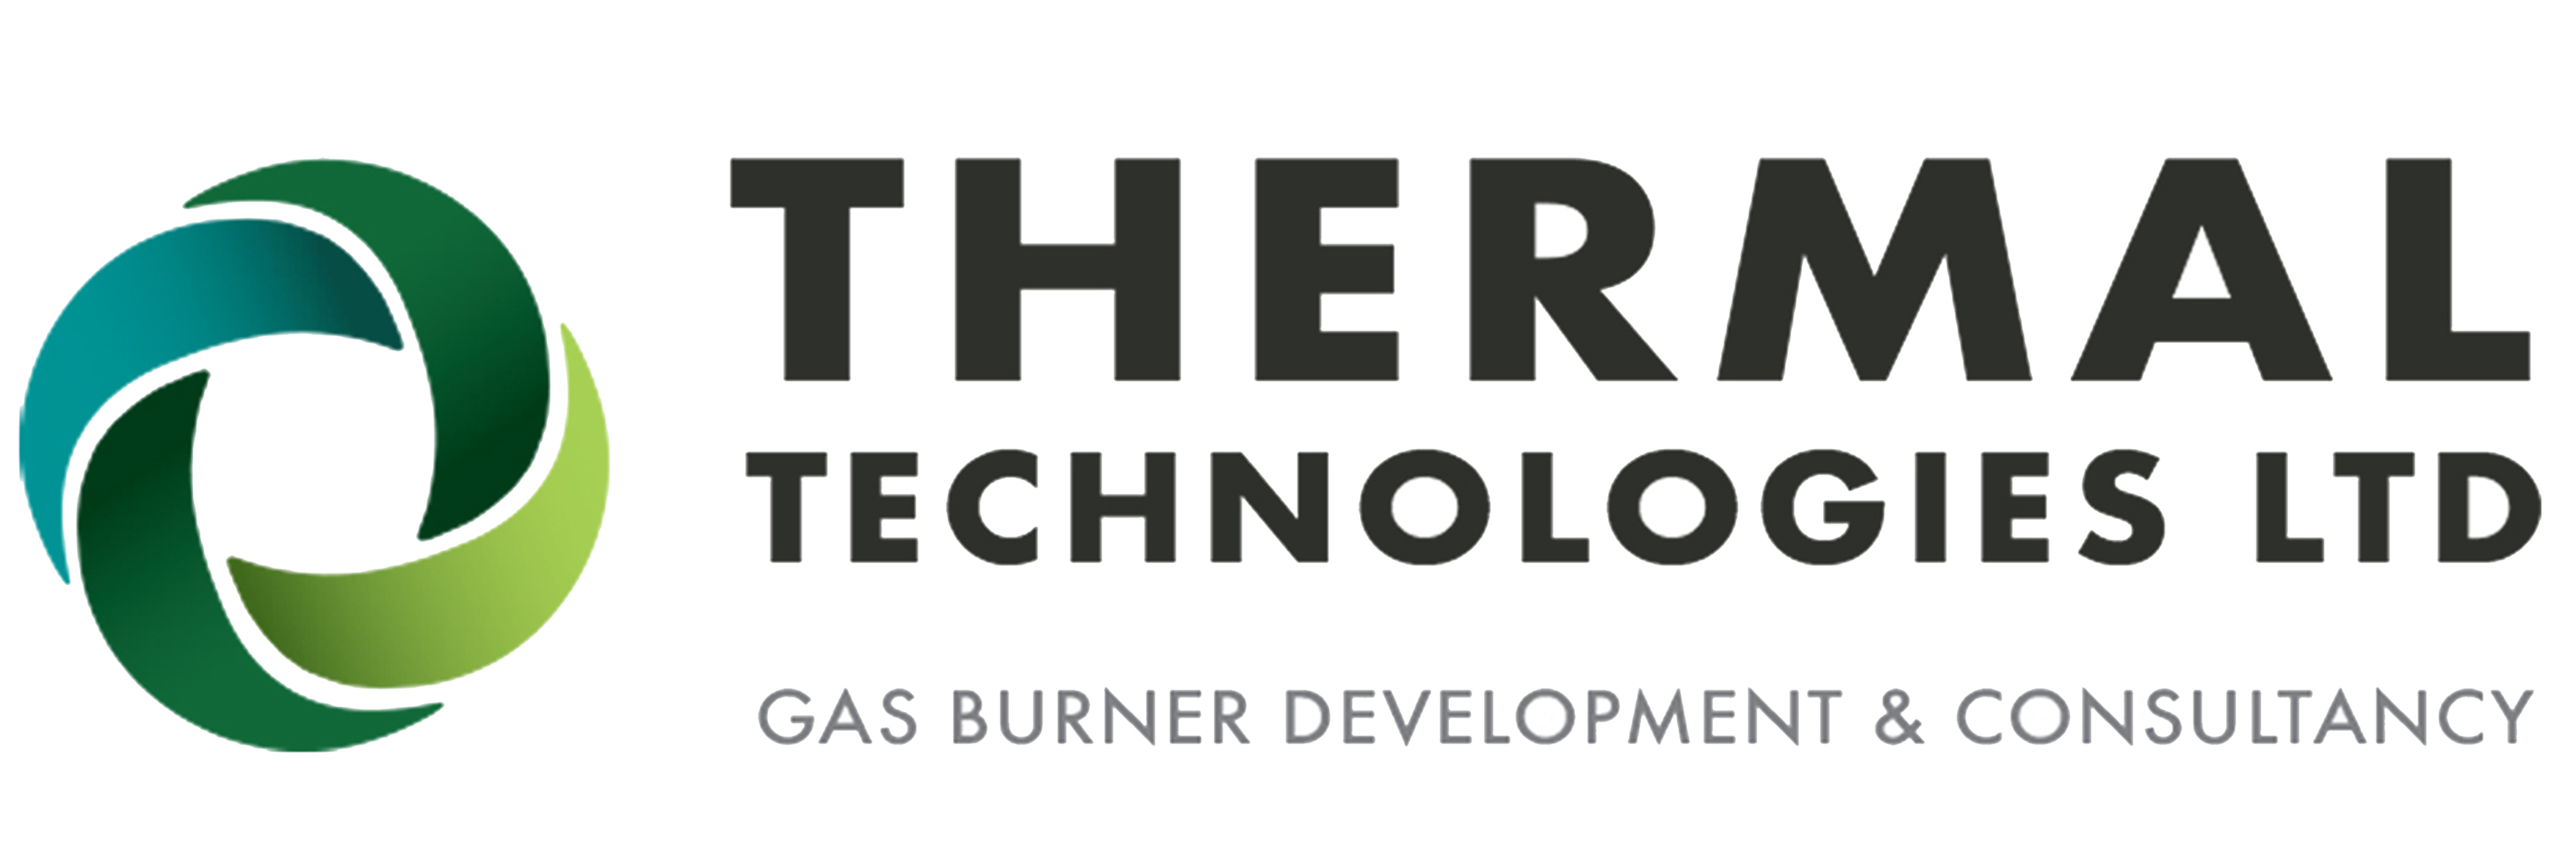 Thermal Technologies